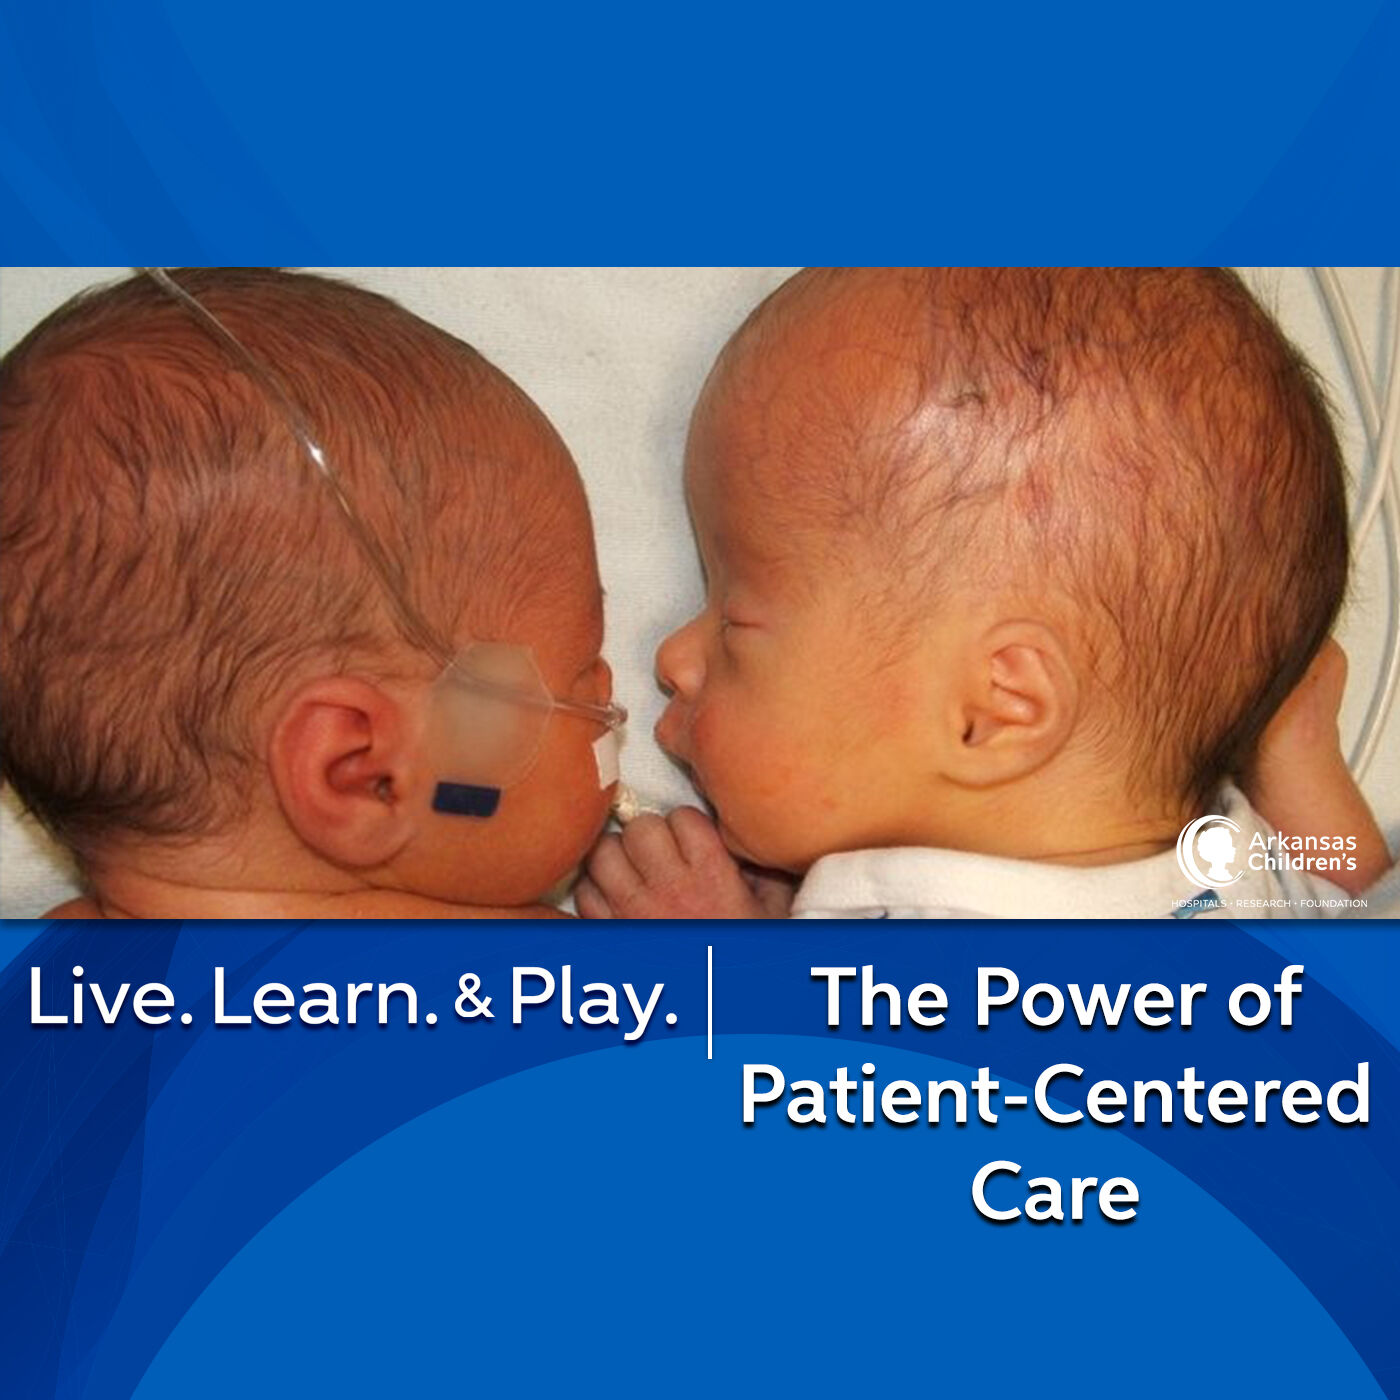 The Power of Patient Centered Care